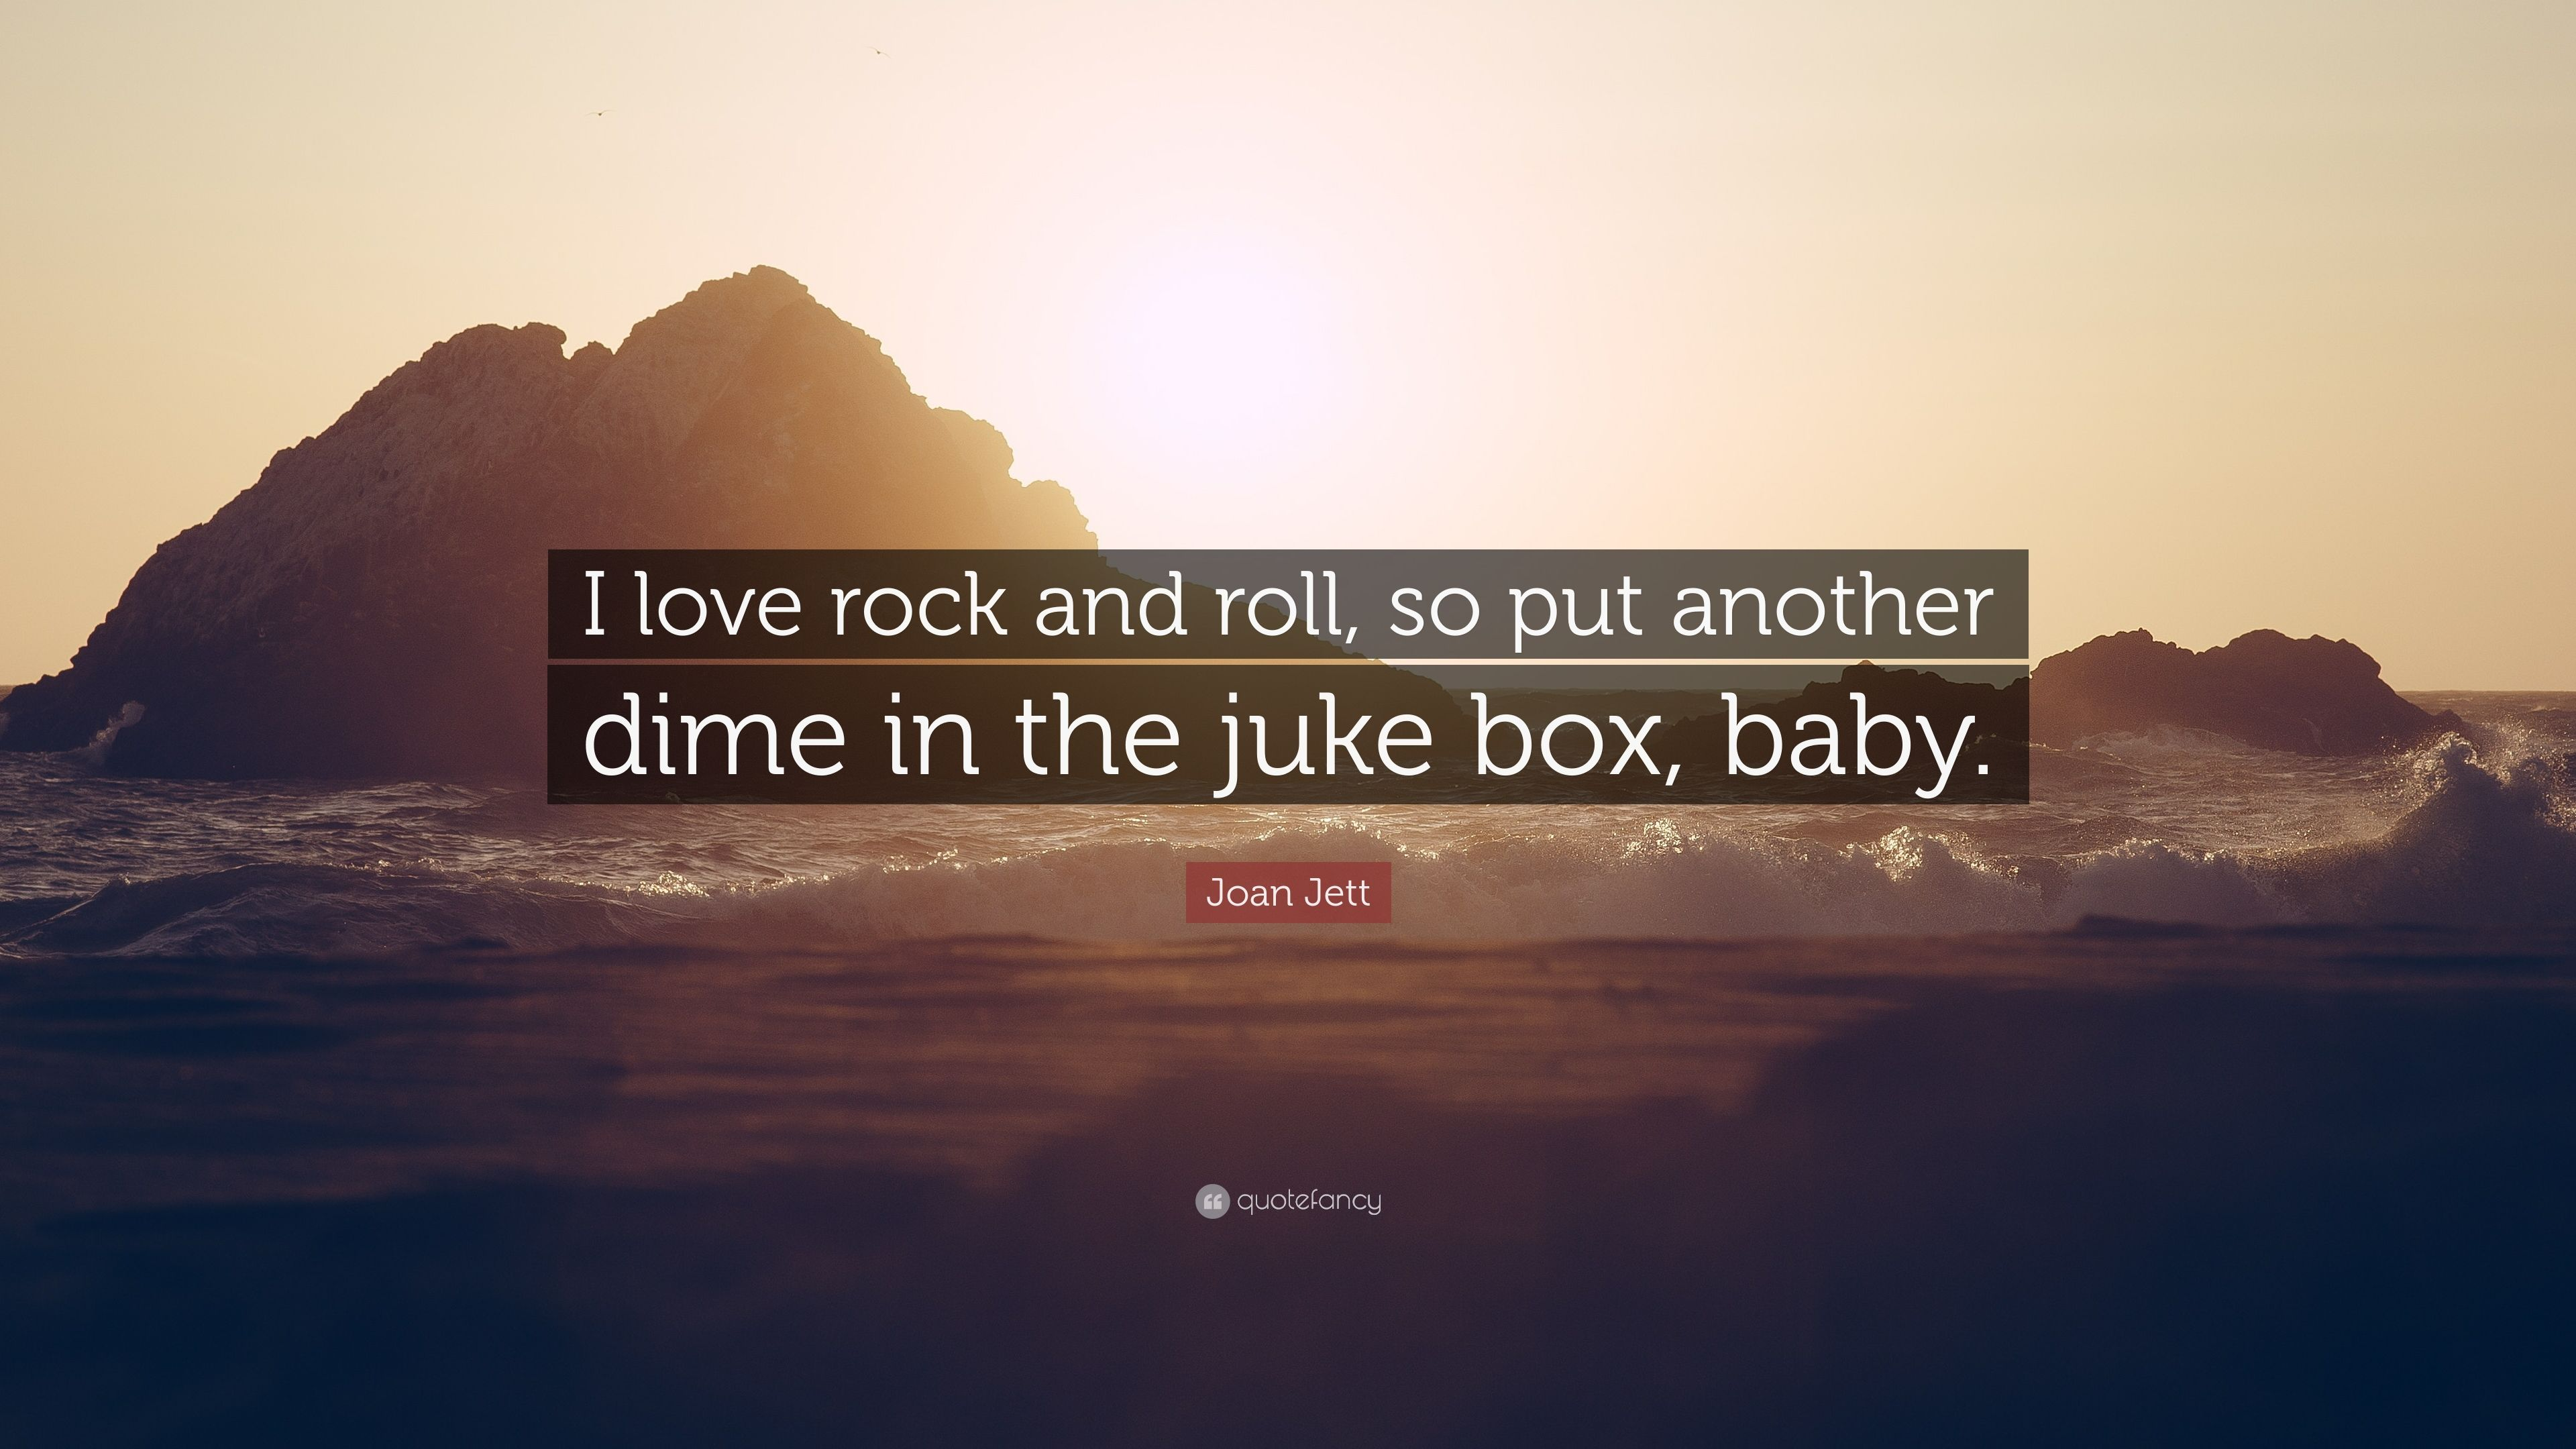 Joan Jett Quote I Love Rock And Roll So Put Another Dime In The